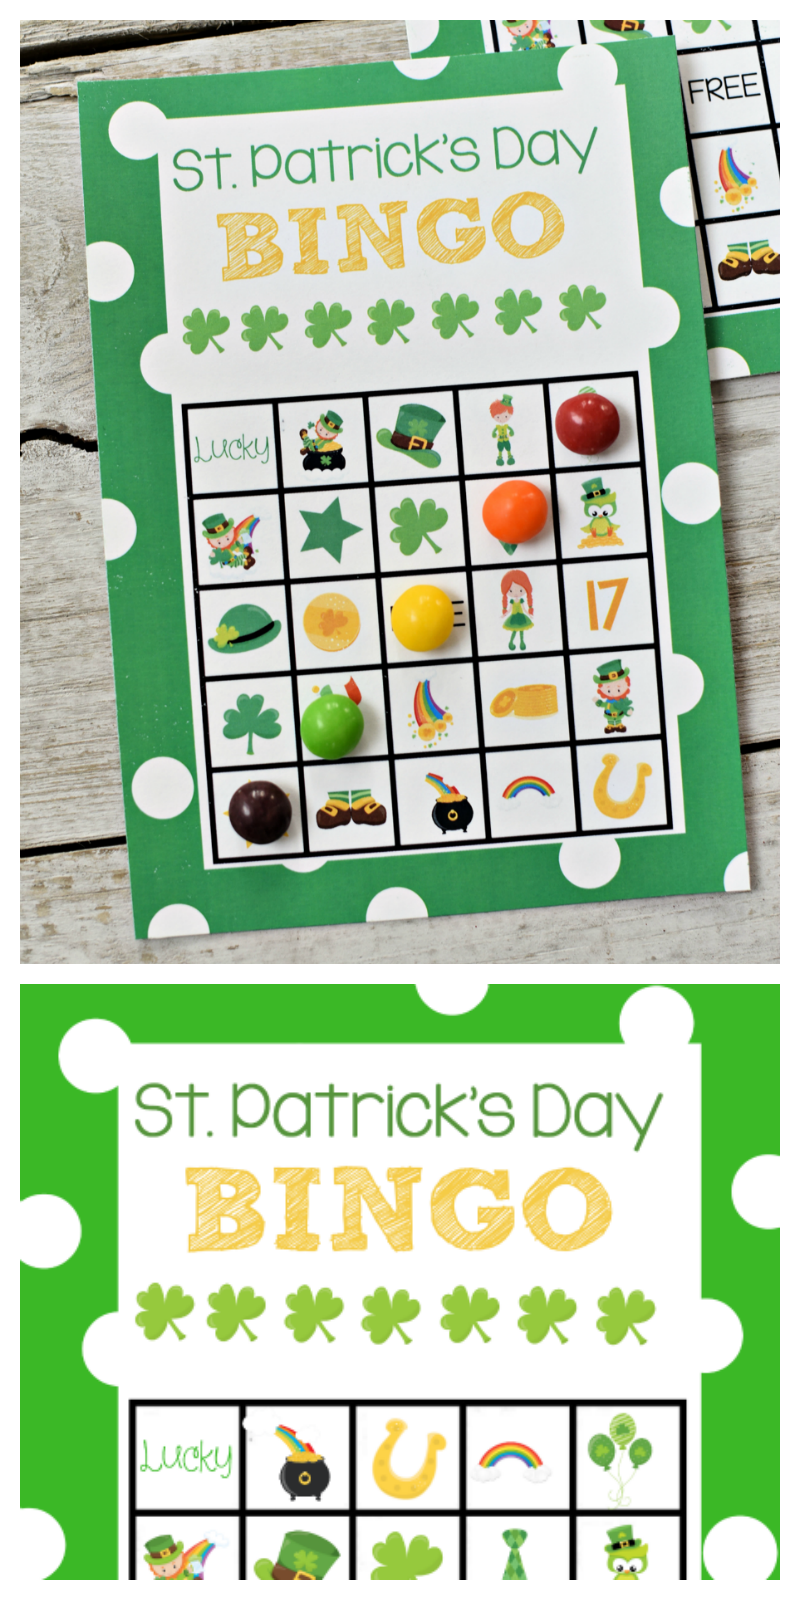 St. Patrick's Day Bingo Game to print and play with the kids! #stpatricksday